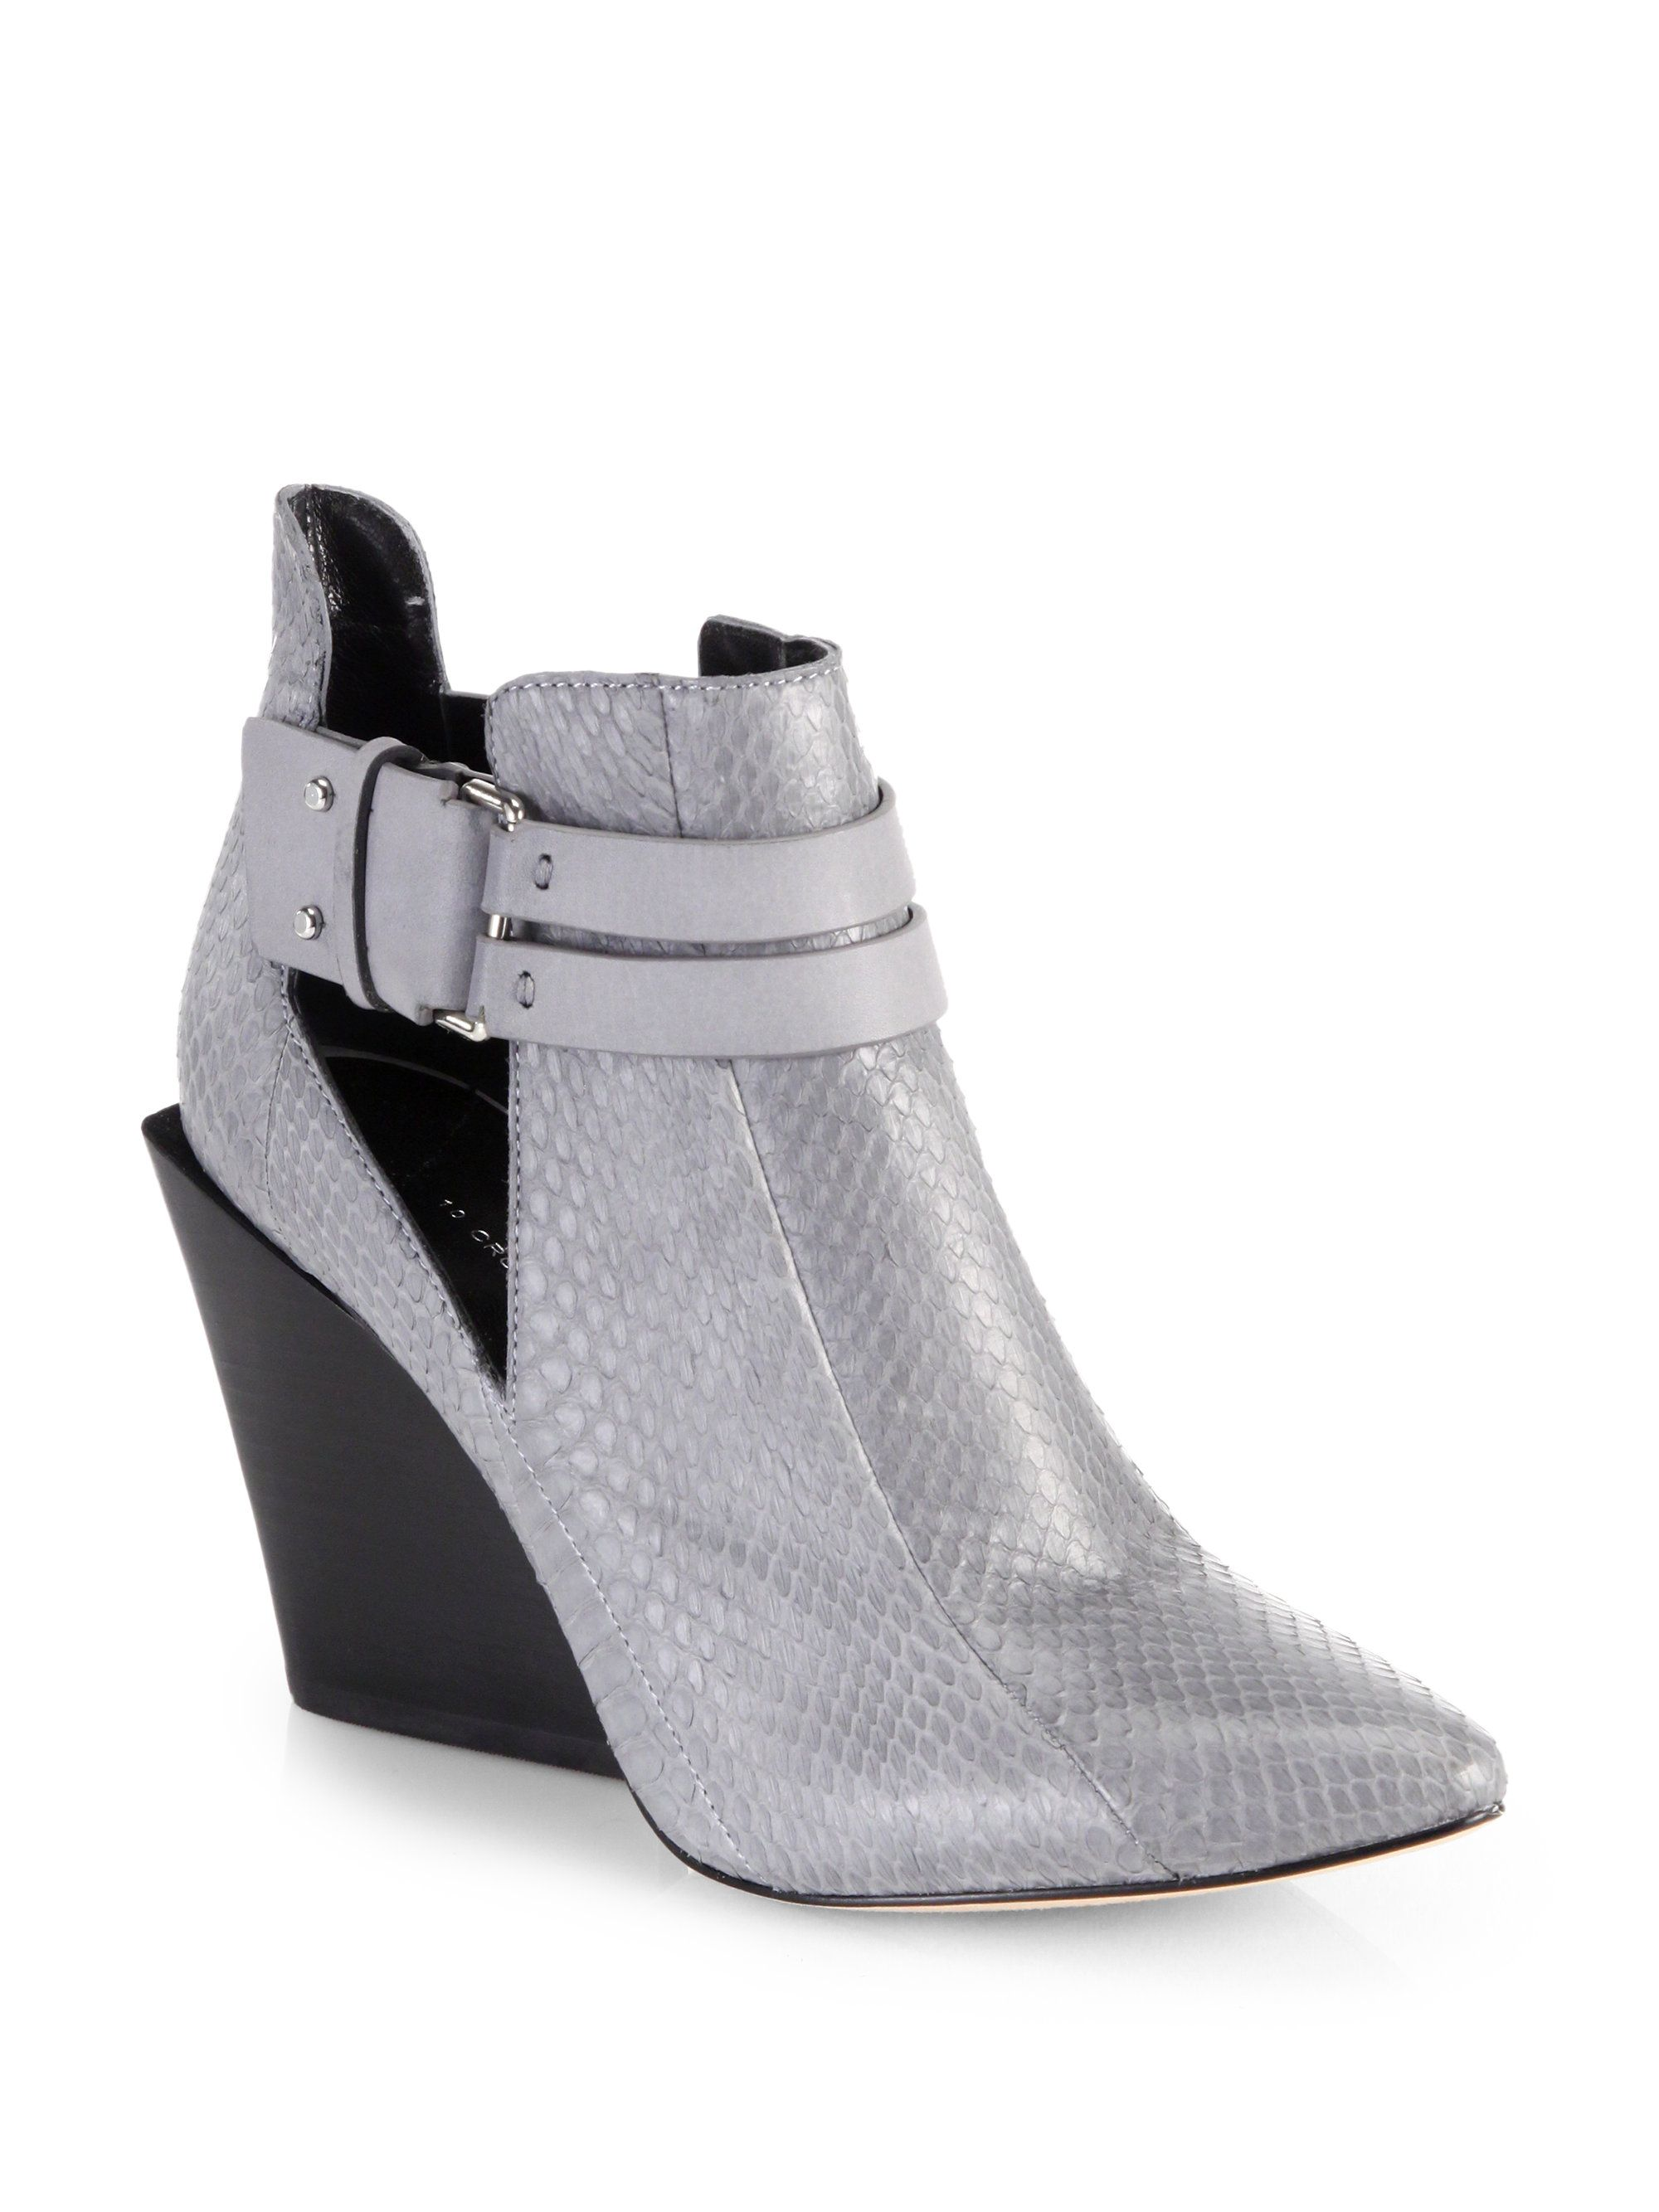 Derek Lam 10 Crosby Leather Embossed Boots clearance best store to get quality for sale free shipping buy cheap websites 2014 newest cheap price Pvn8GVa8K